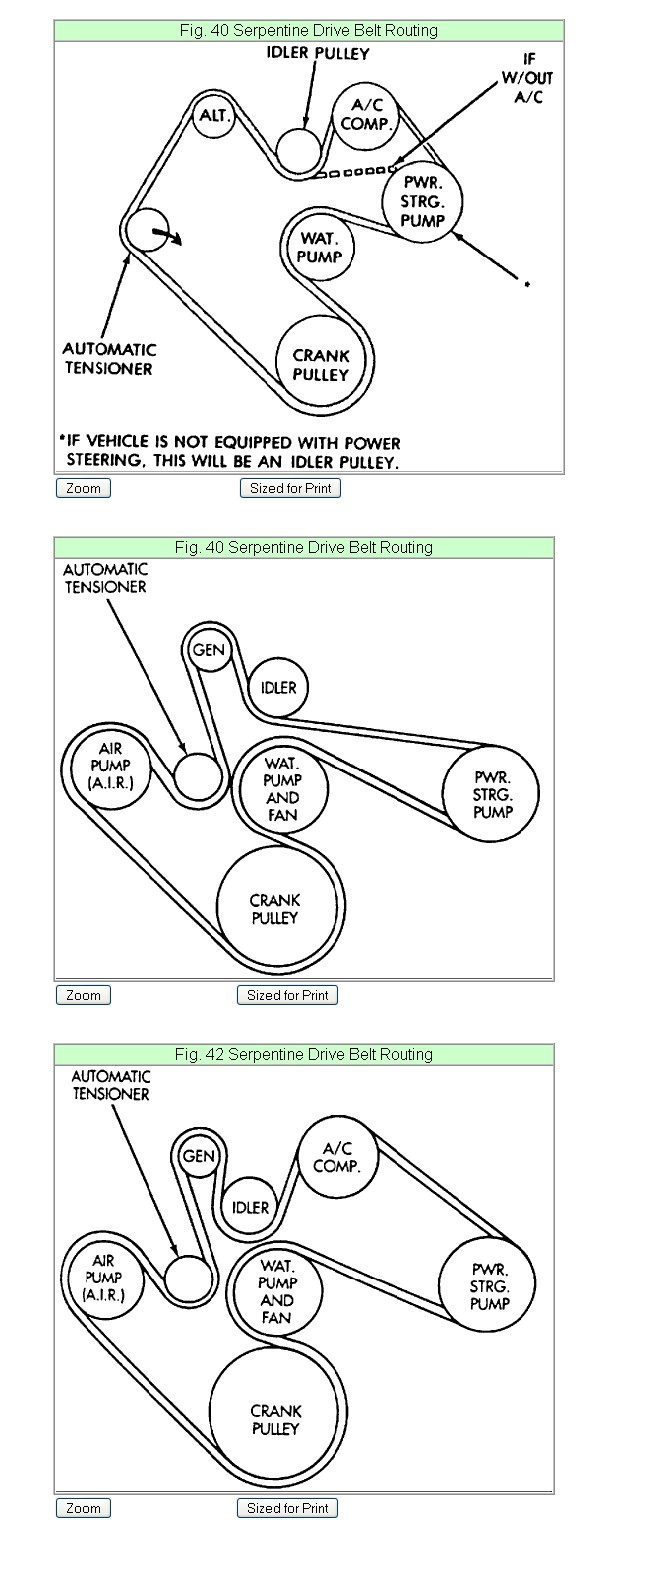 Instructions Please On Replacing The Serpentine Belt A 94 Dodge Gm 3500 Engine Diagram Graphic